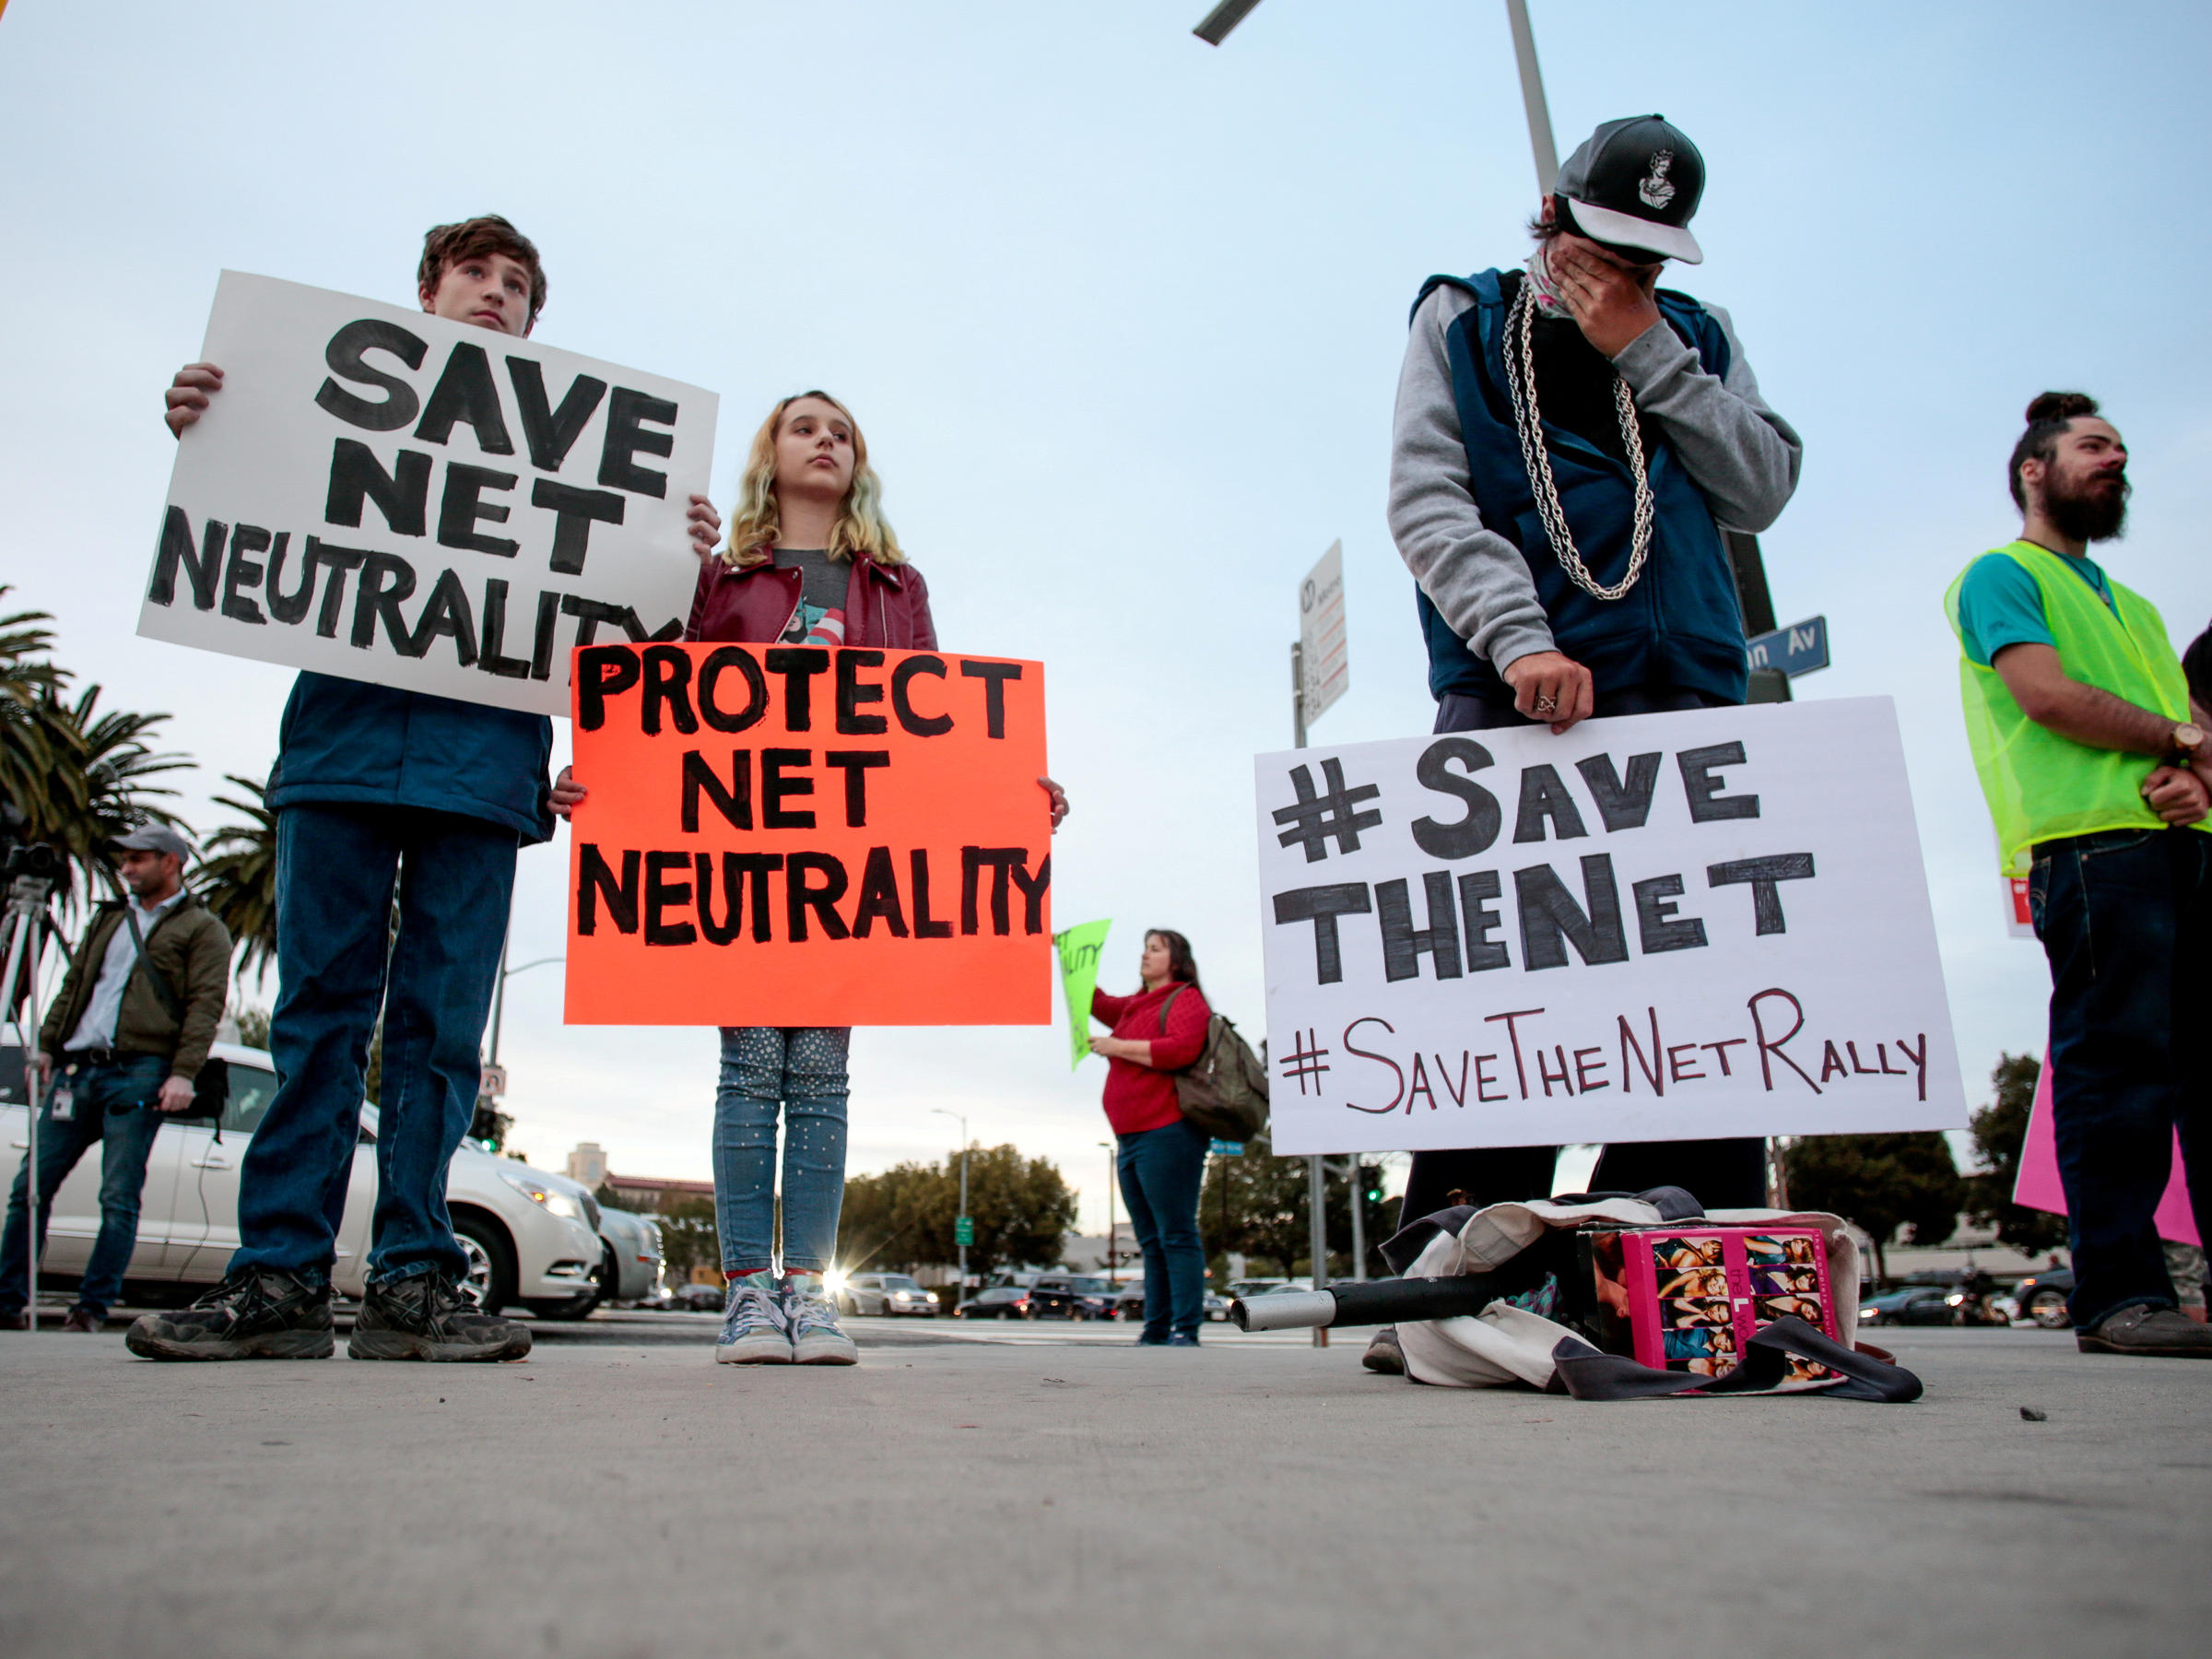 New California internet neutrality law sparks U.S. lawsuit